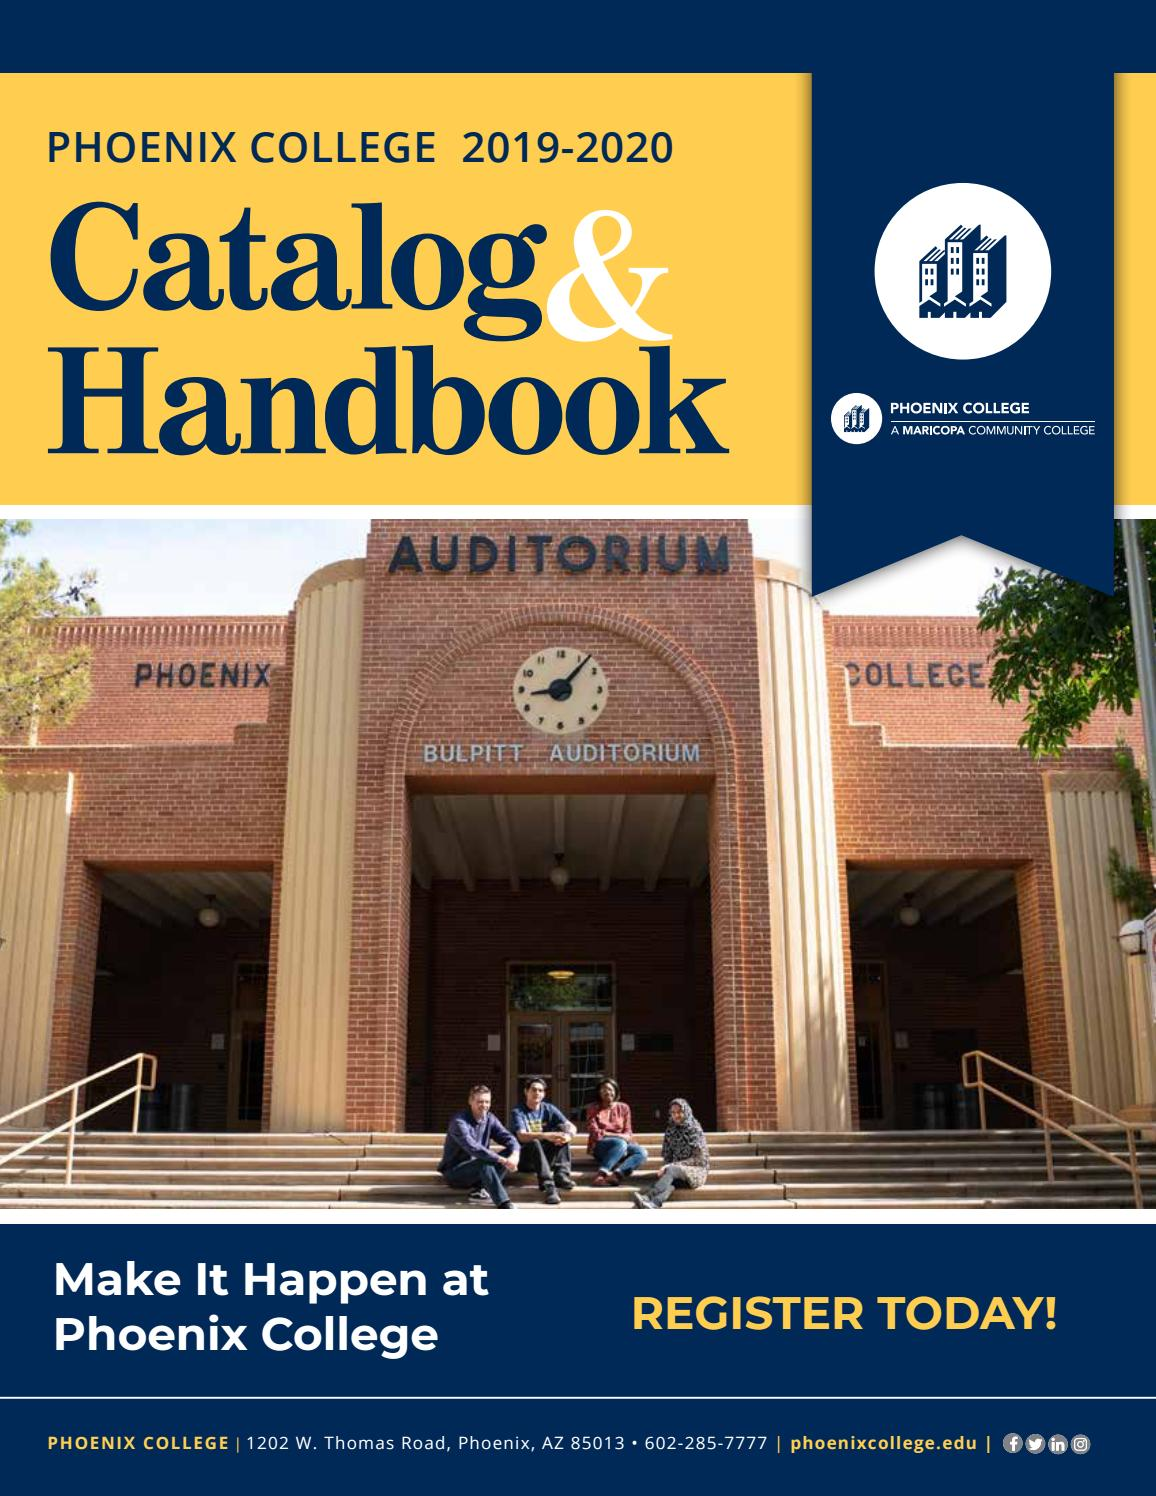 2019-2020 Phoenix College Catalog and Handbook by Phoenix